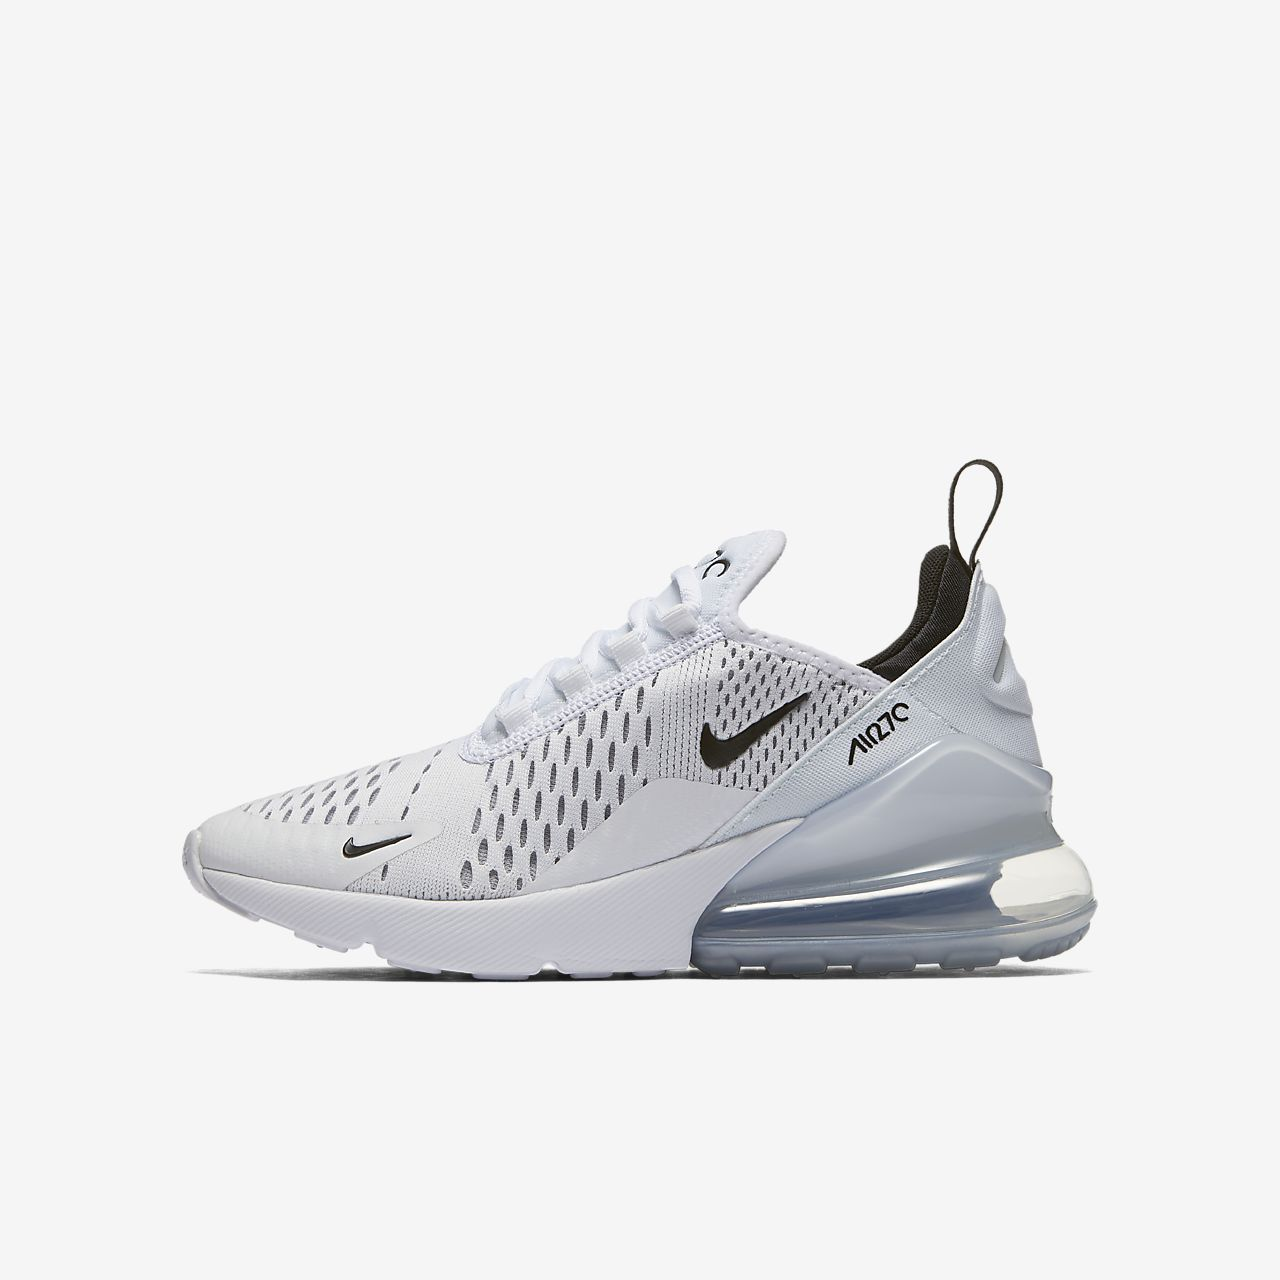 Calzature & Accessori casual neri per donna Nike Air Max 270